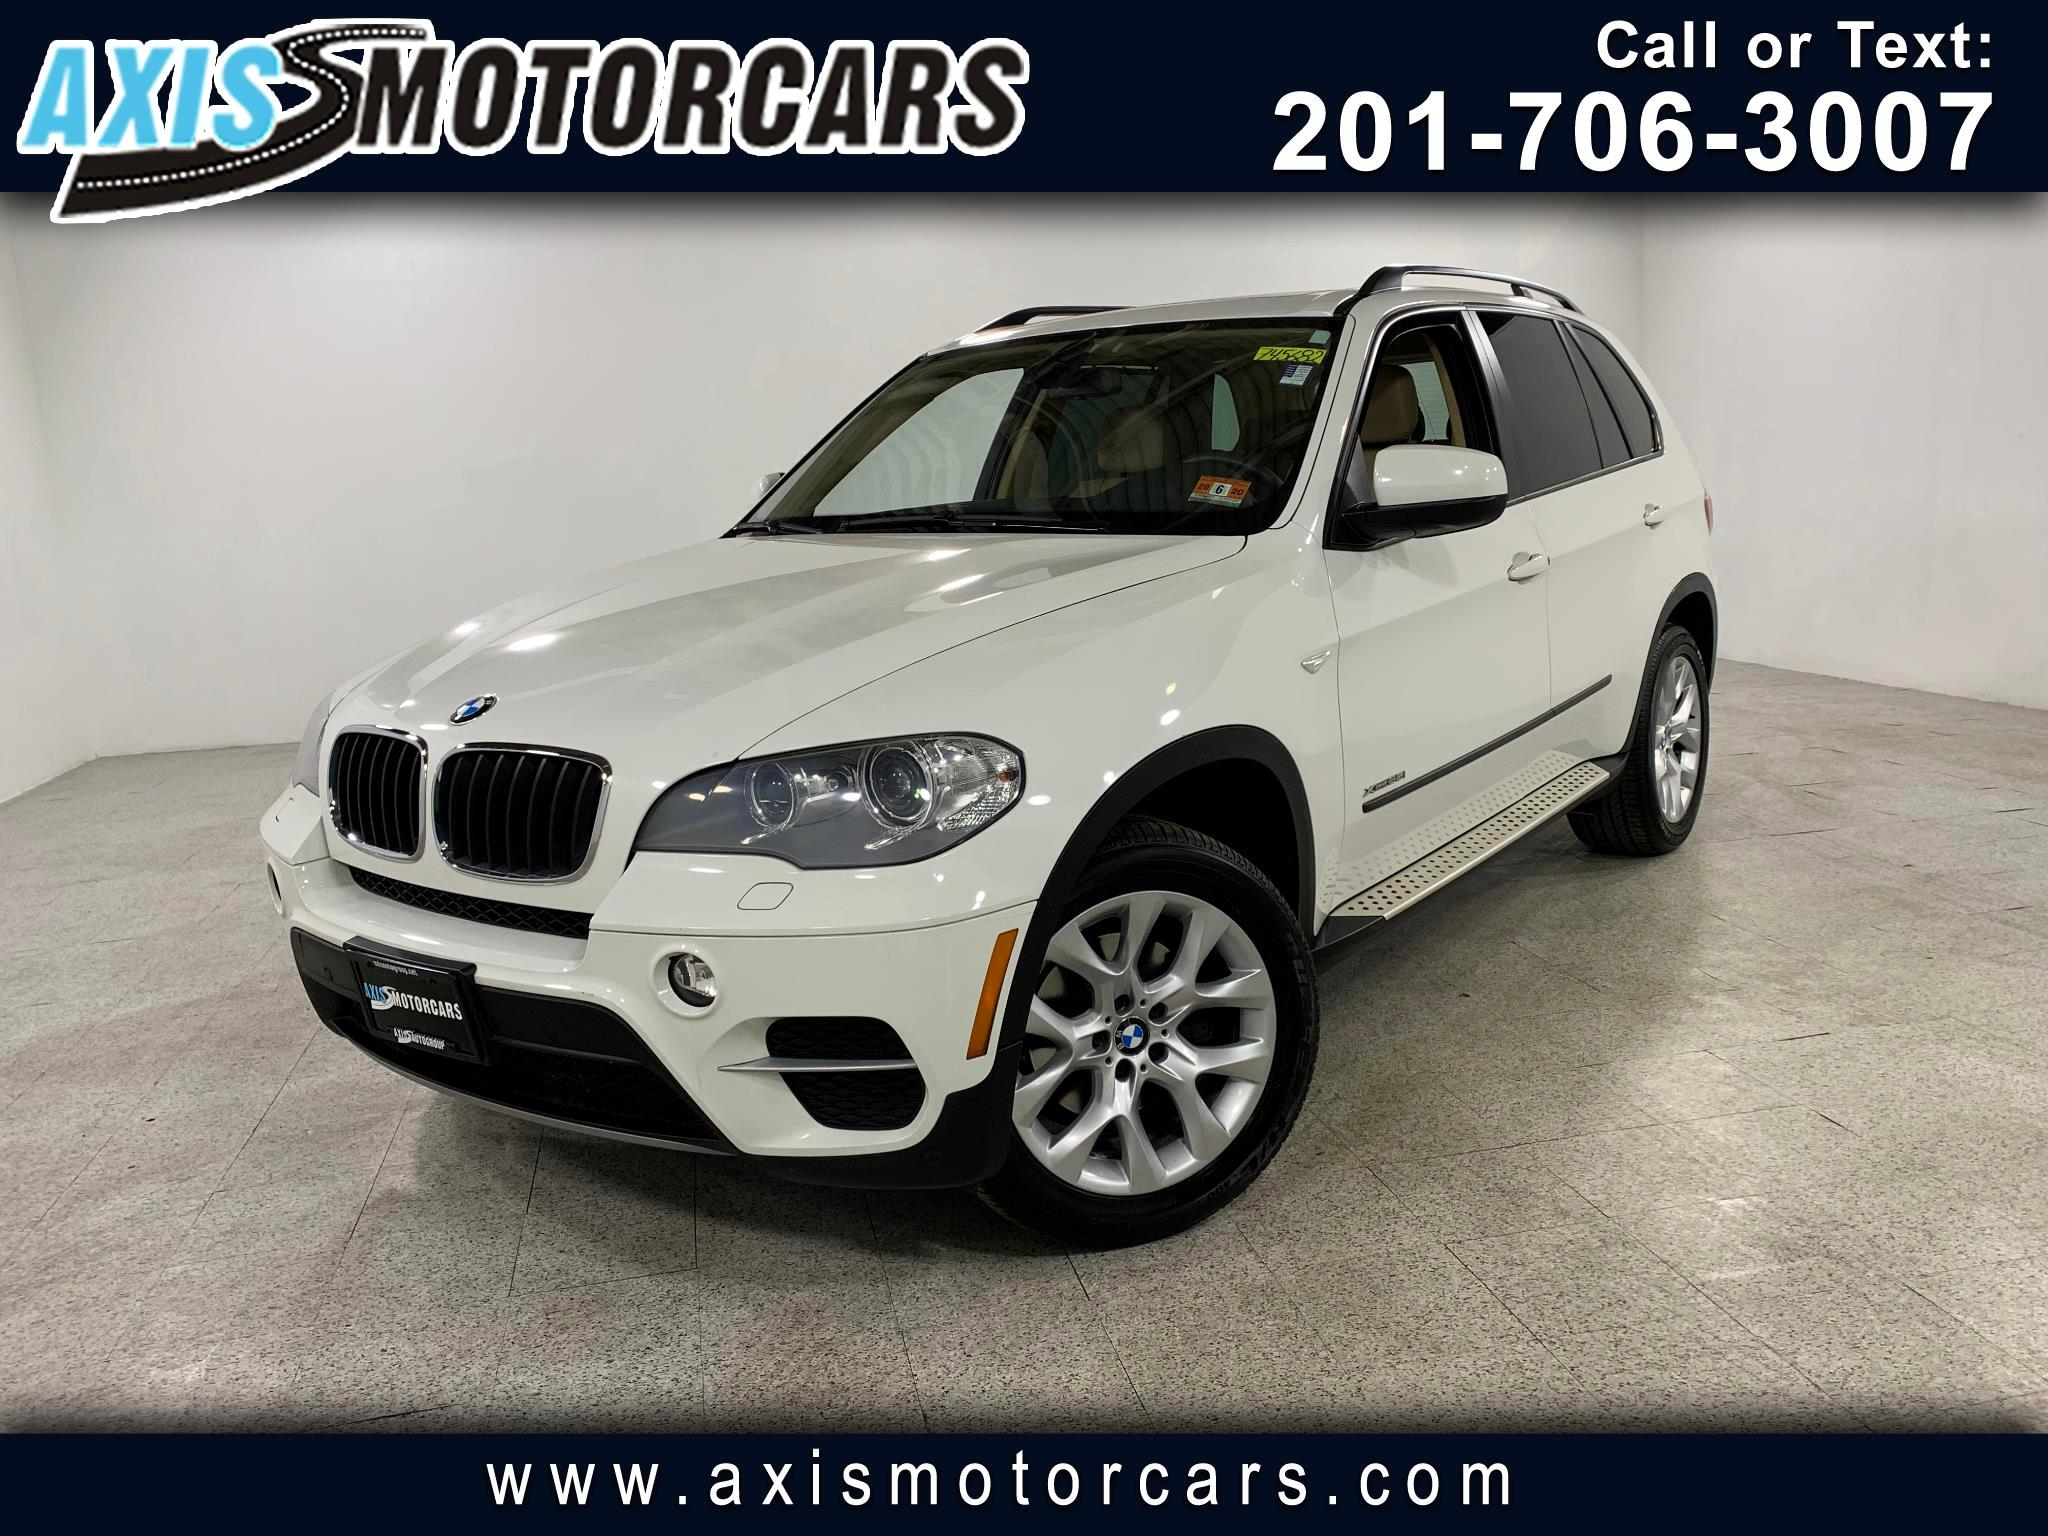 2012 BMW X5 w/Navigation Rear Entertainment System